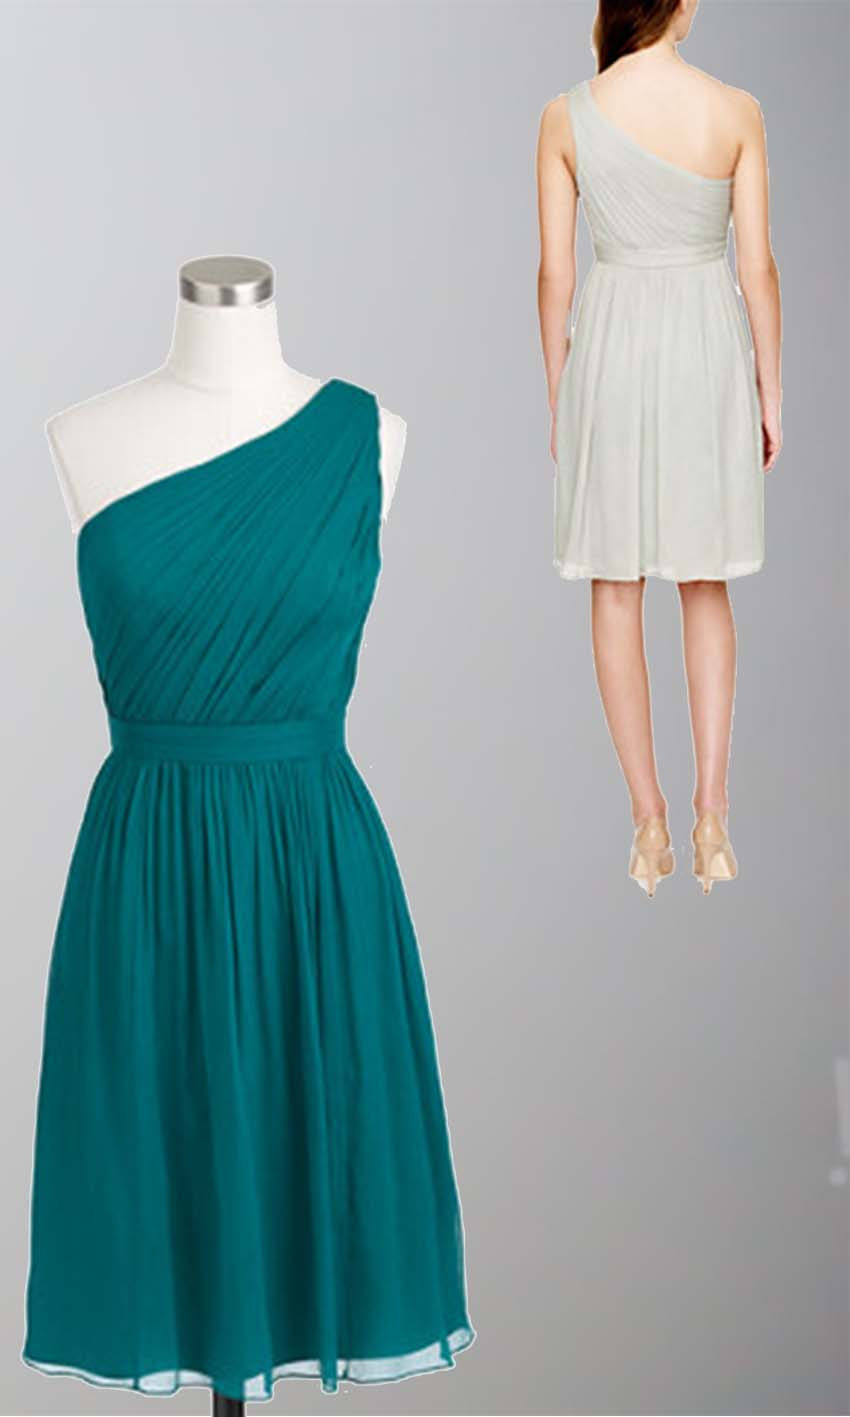 Cheap Peacock One Shoulder Bridesmaid Dresses KSP249 [KSP249] - £87.00 : Cheap Prom Dresses Uk, Bridesmaid Dresses, 2014 Prom & Evening Dresses, Look for cheap elegant prom dresses 2014, cocktail gowns, or dresses for special occasions? kissprom.co.uk offers various bridesmaid dresses, evening dress, free shipping to UK etc.